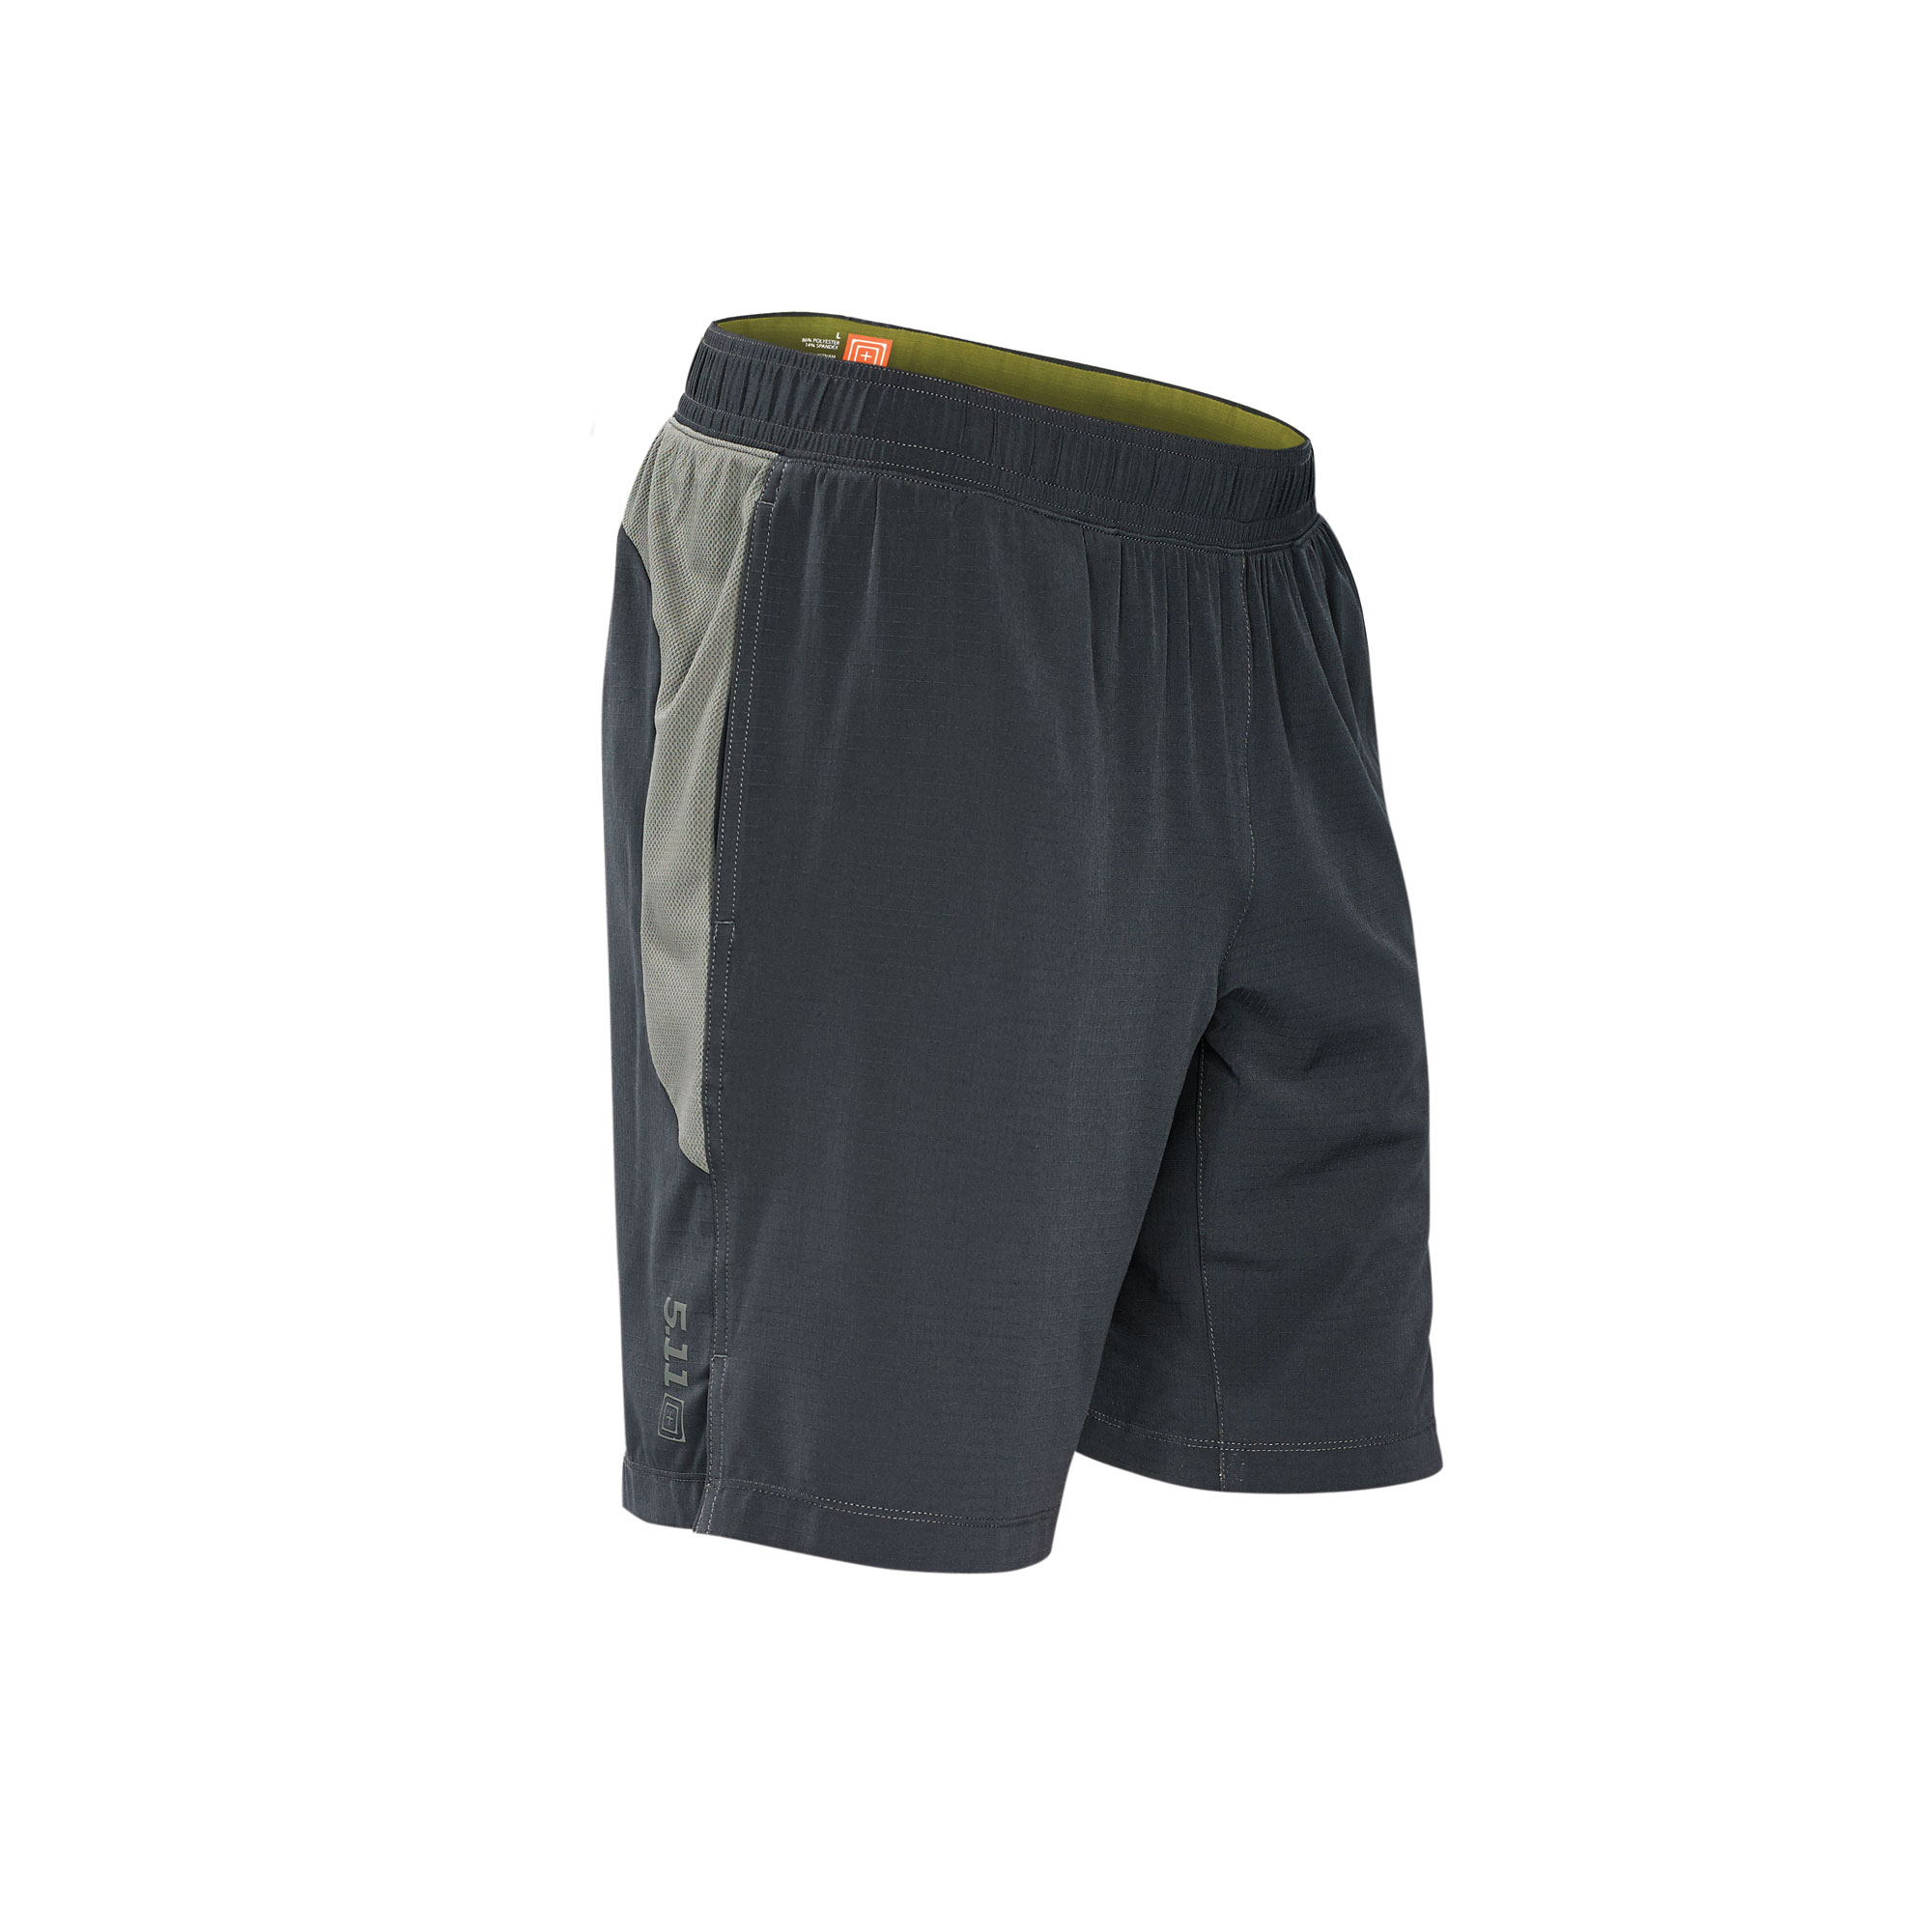 5.11 RECON Training Shorts - Scorched Earth